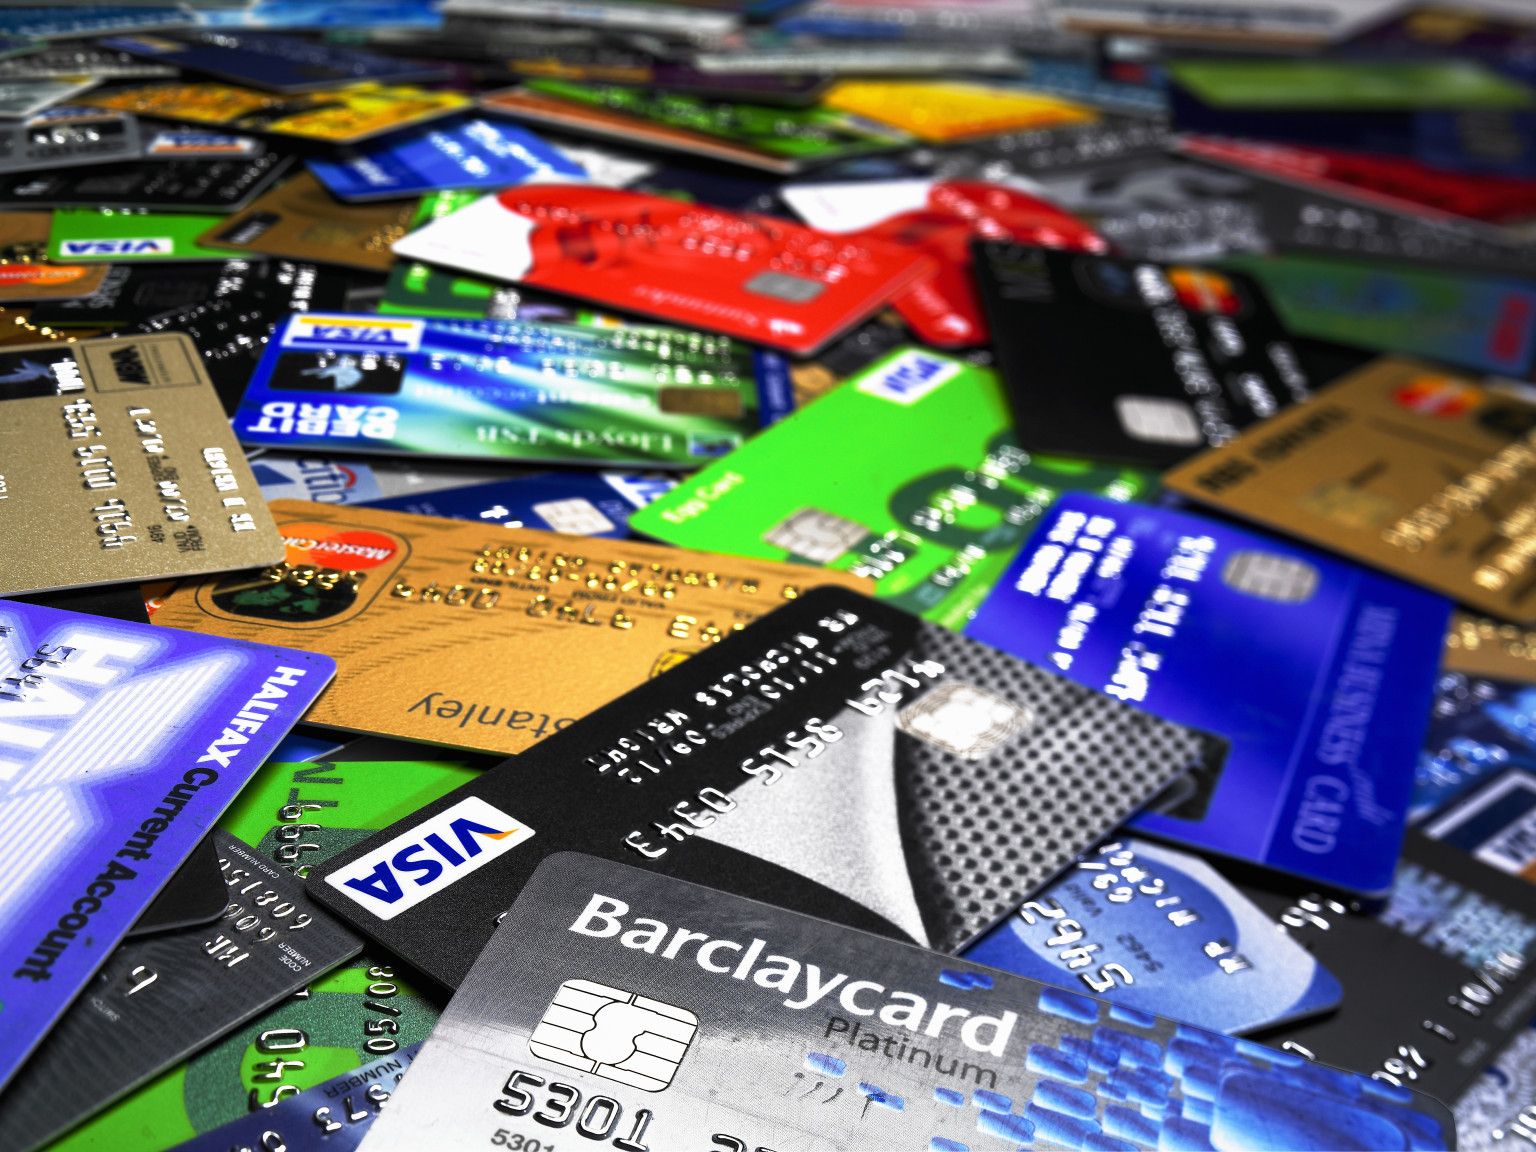 Most people know Discover as a credit card company, but it also operates an online bank and offers some of the best rates and terms on checking and savings accounts and certificates of deposit (CDs).